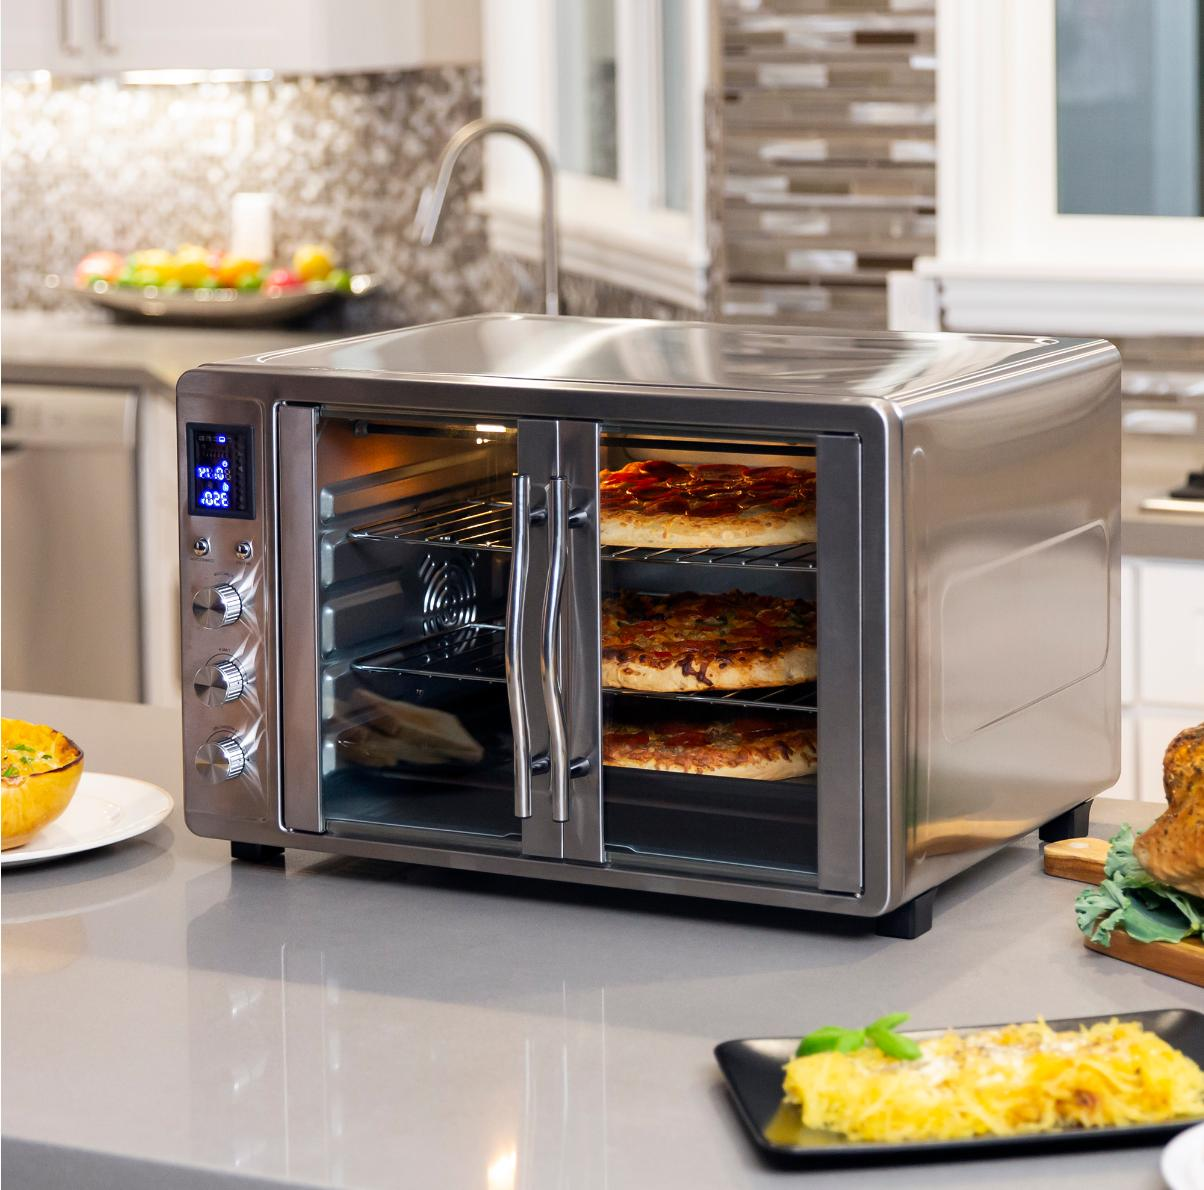 55L Extra Large Oven w/ French